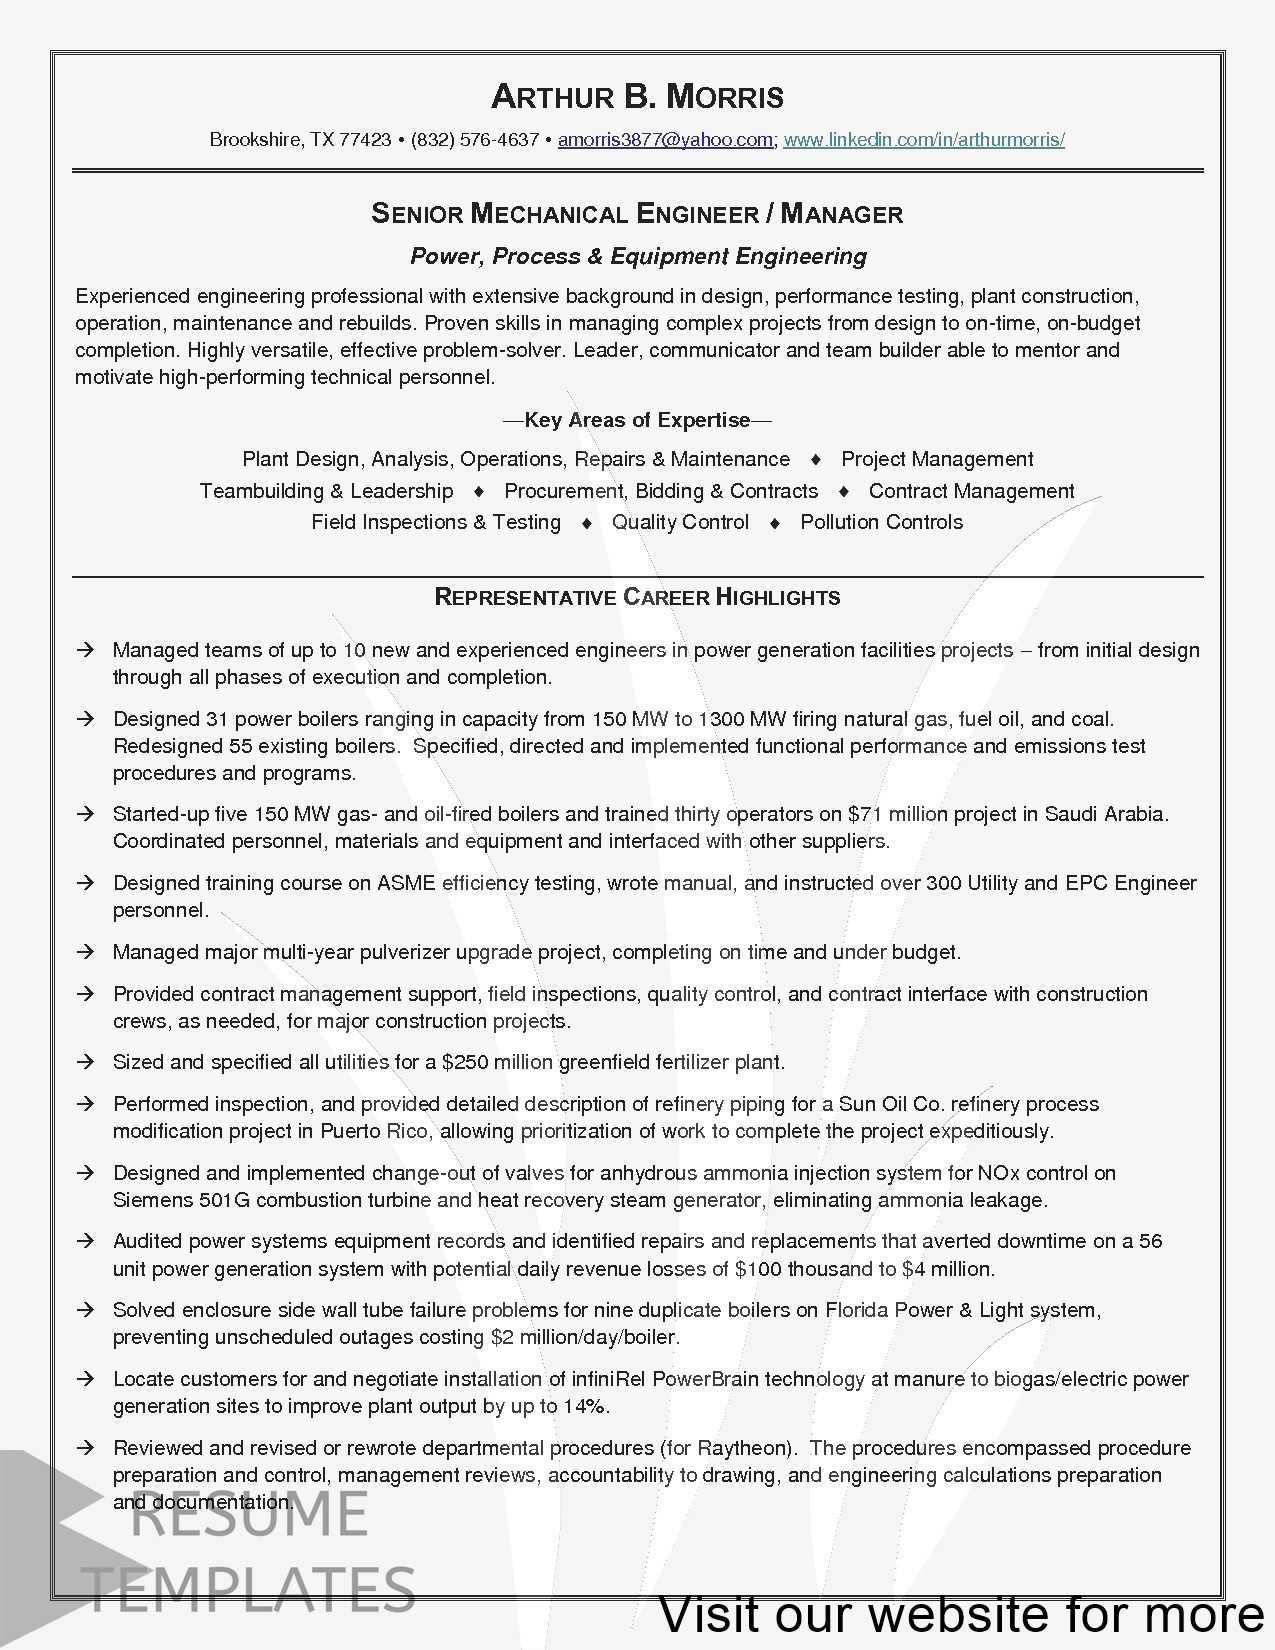 resume template adobe xd Professional in 2020 Resume